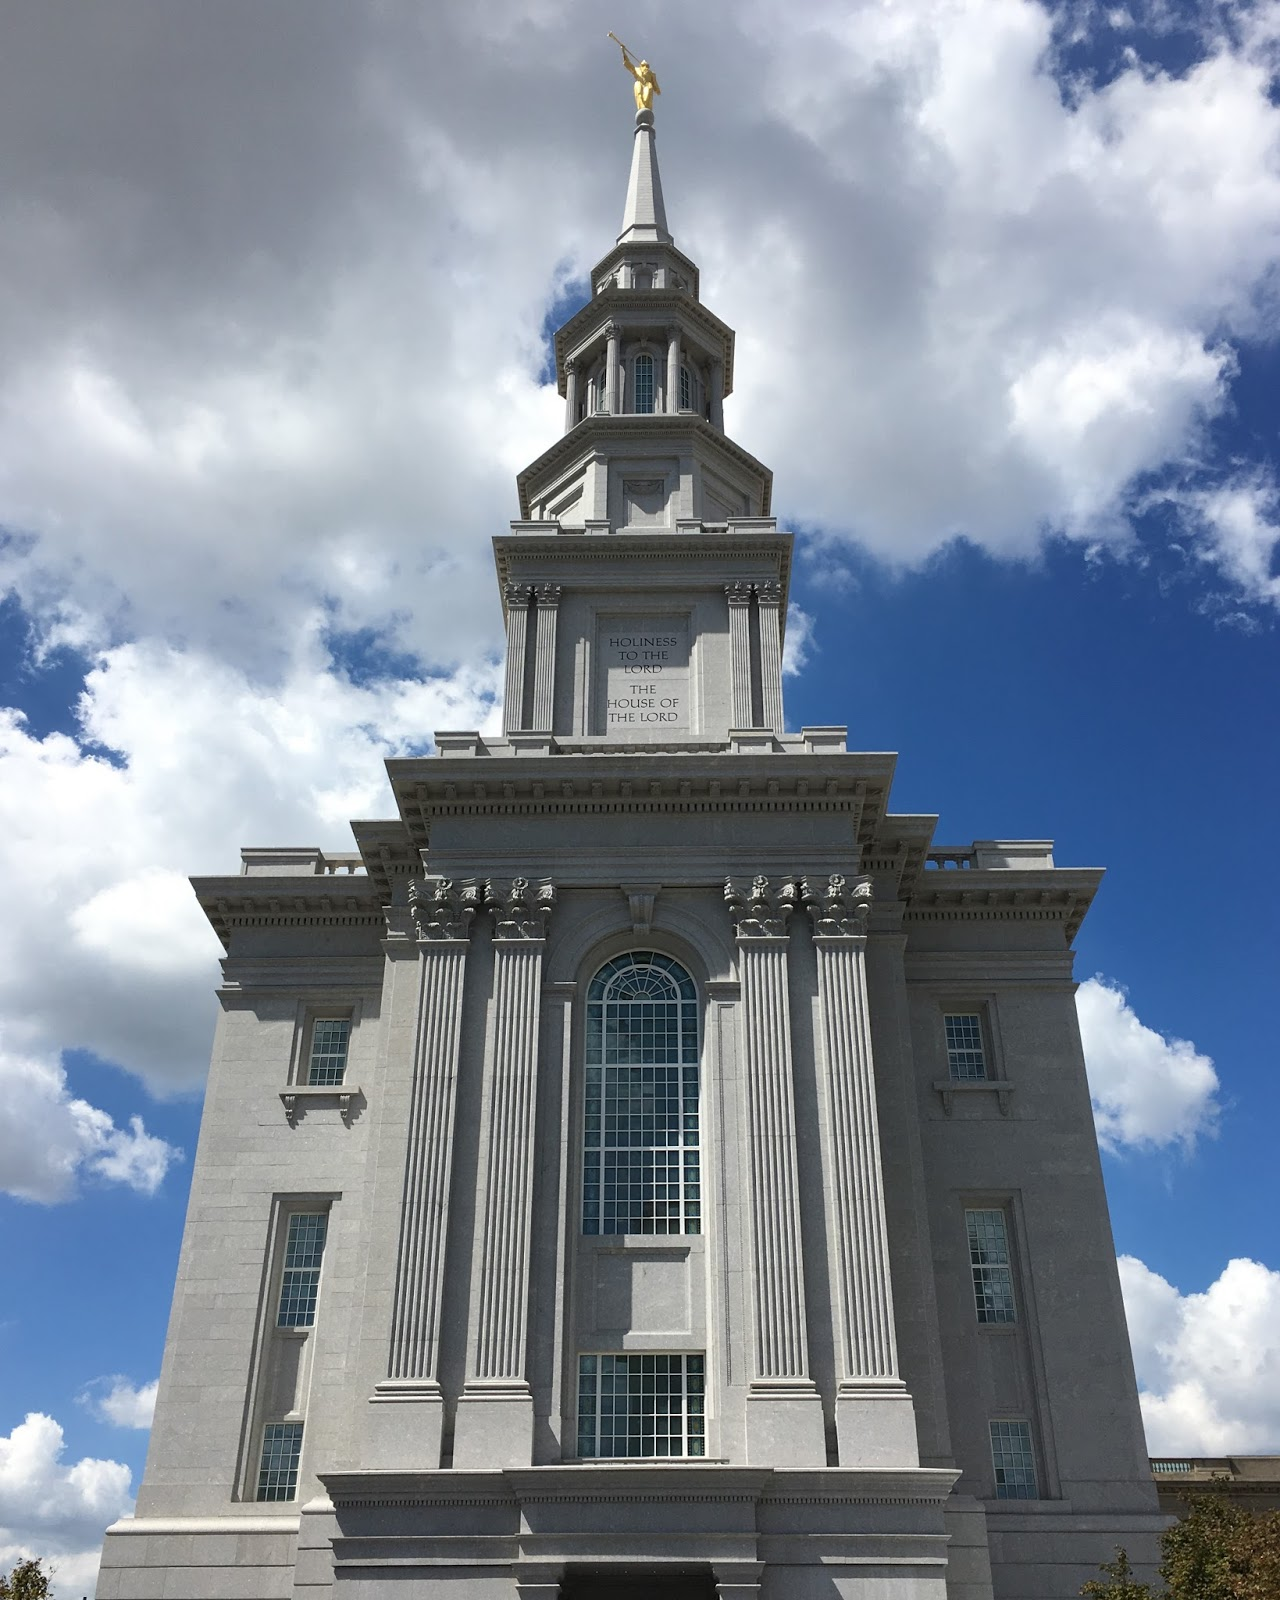 The wandering wahoo september 2016 i dont remember how i found out that there was a new mormon temple in the philadelphia but my eyebrows arched immediately when i heard the news biocorpaavc Choice Image